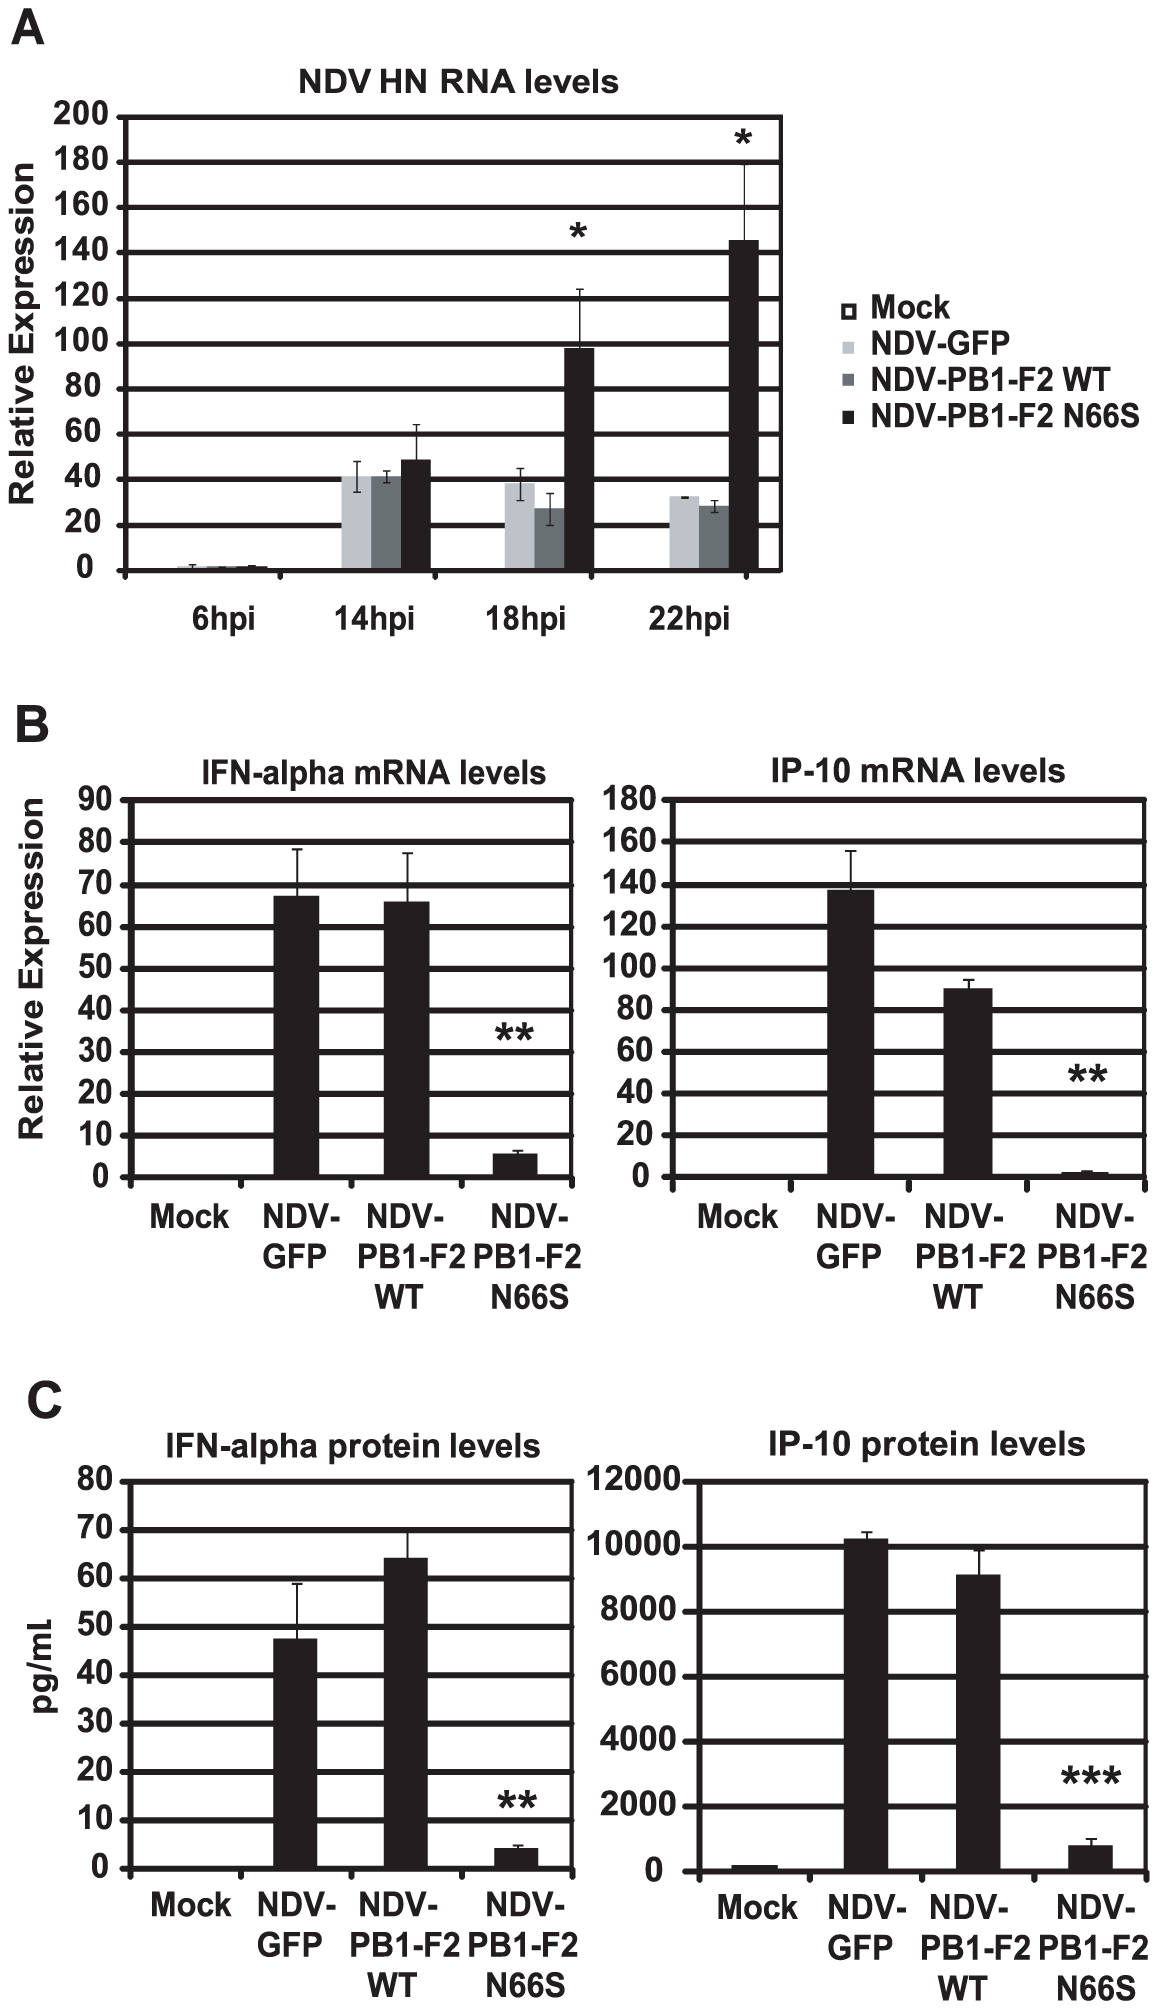 PB1-F2 N66S inhibits NDV induced IFN in primary human dendritic cells.